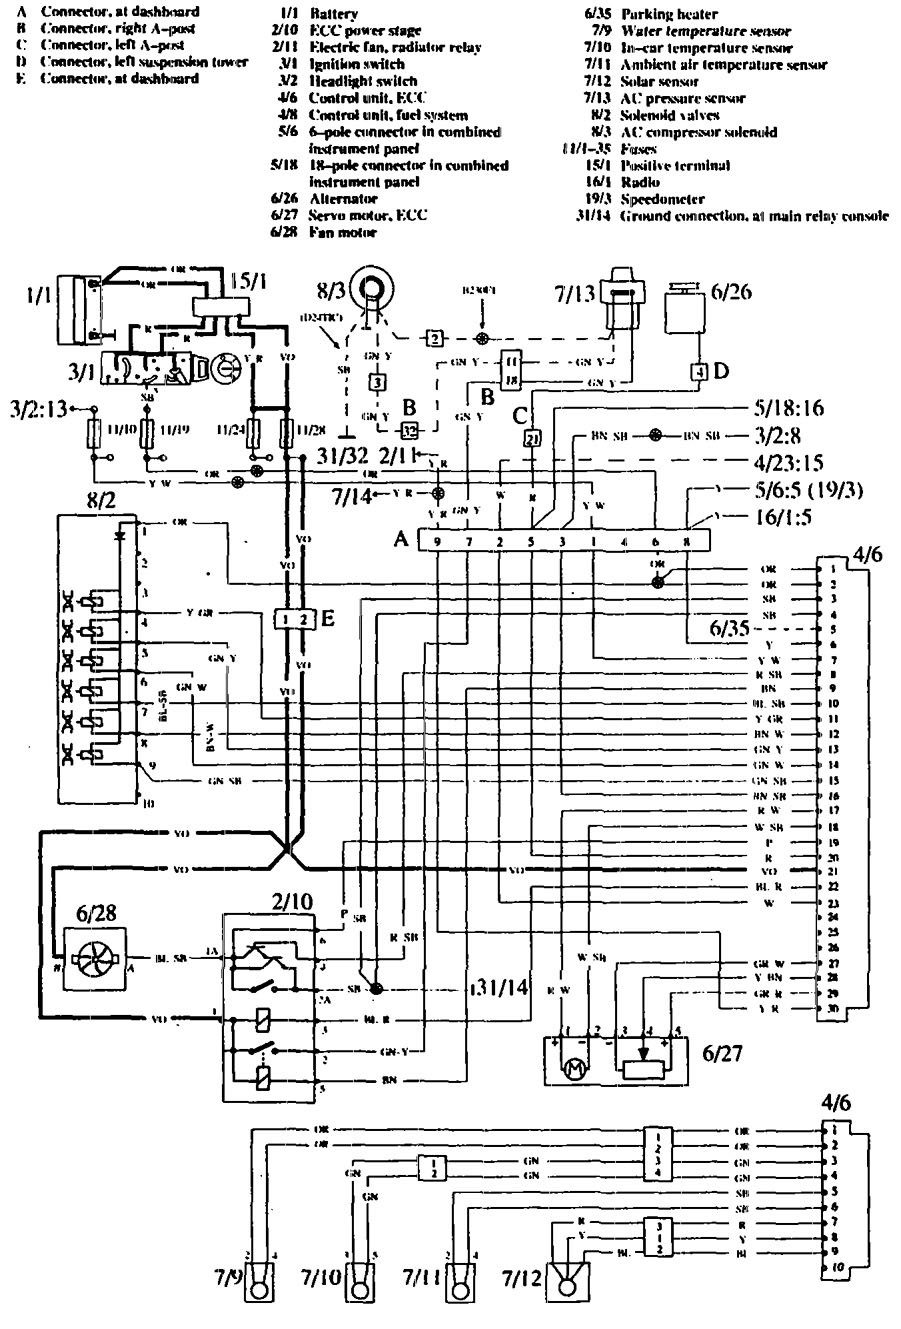 hvac wiring harness